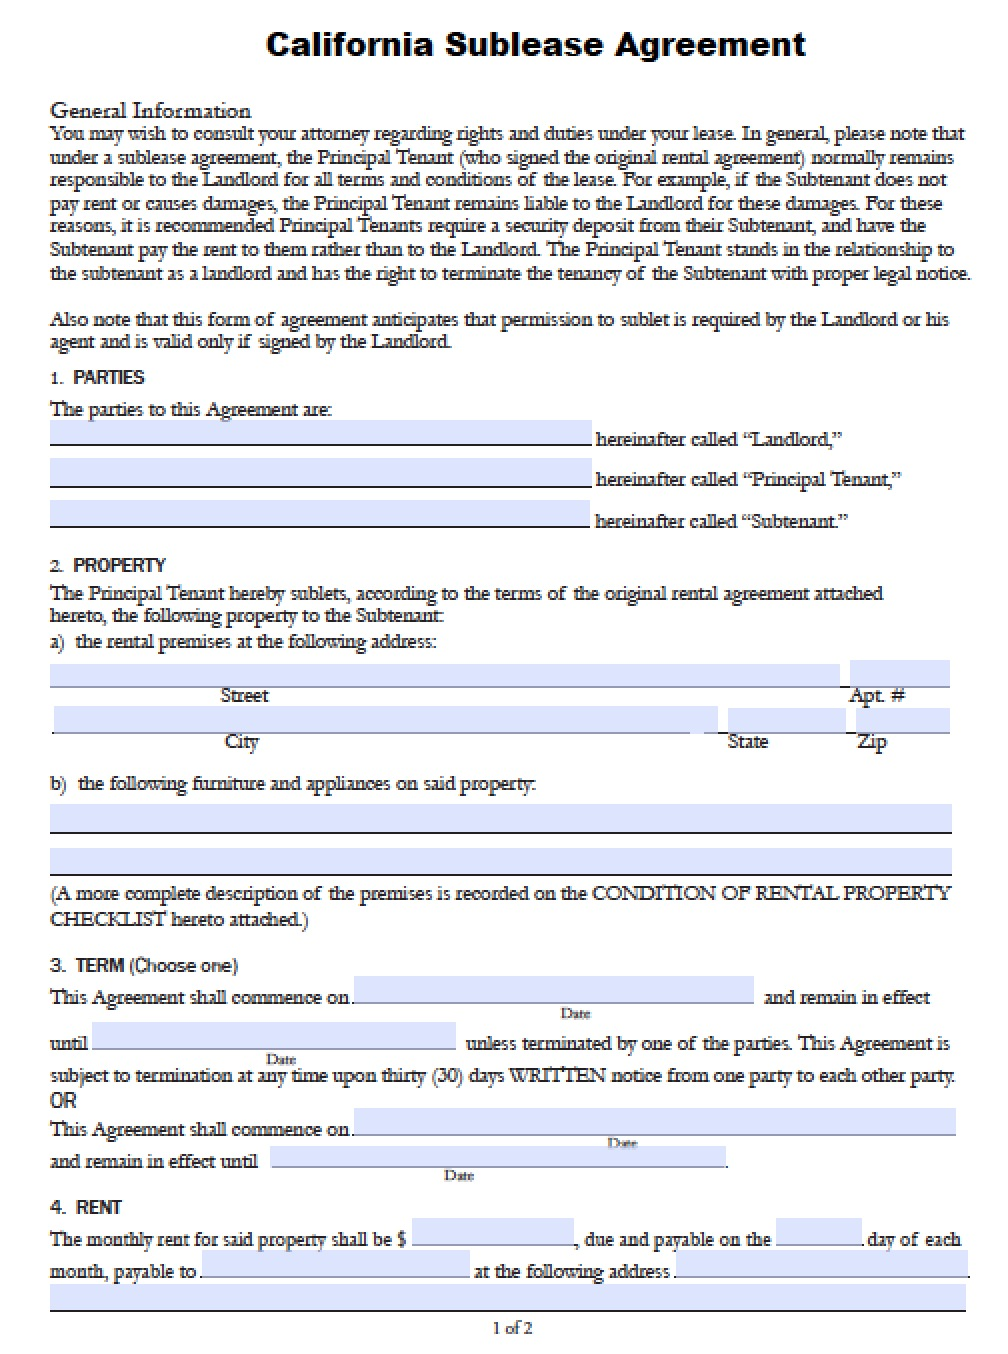 California Sublease Agreement Version #2 | Adobe PDF | Microsoft Word  Contractor Agreement Template Word